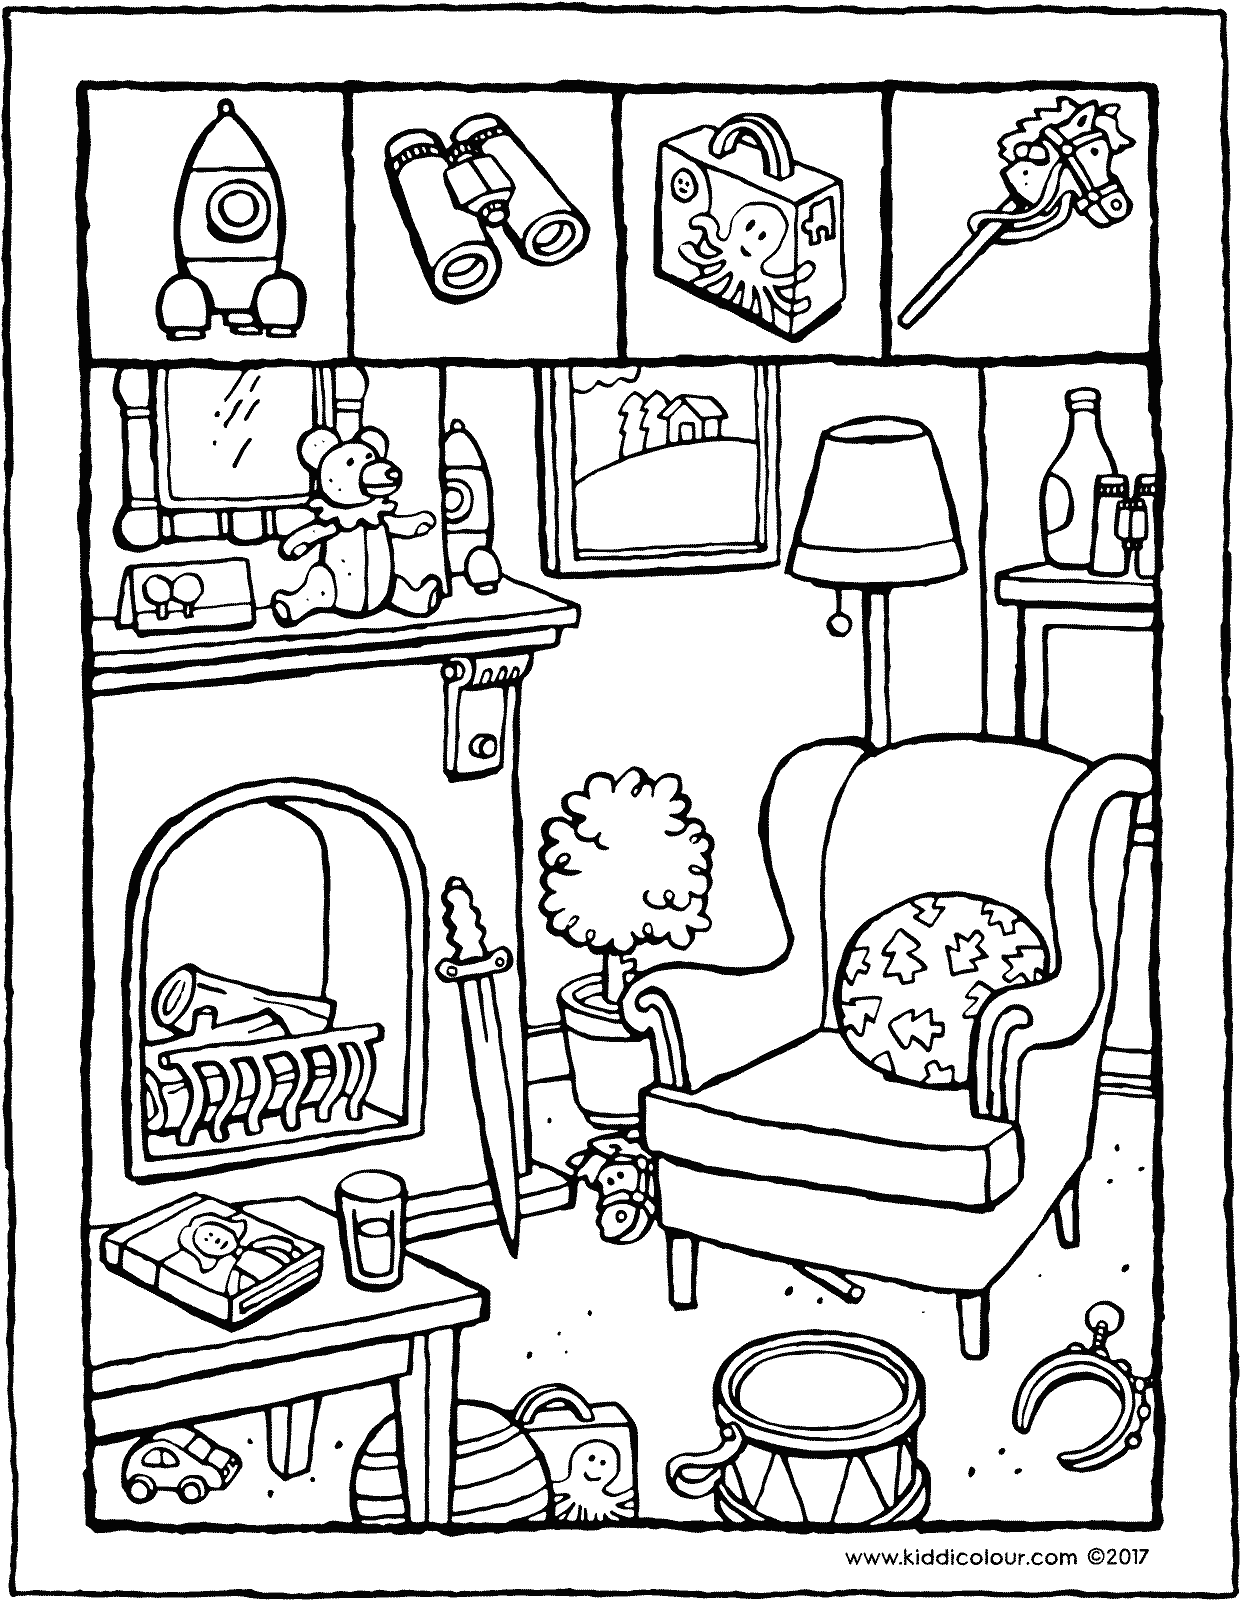 games observation spot the toys colouring page drawing picture 01V